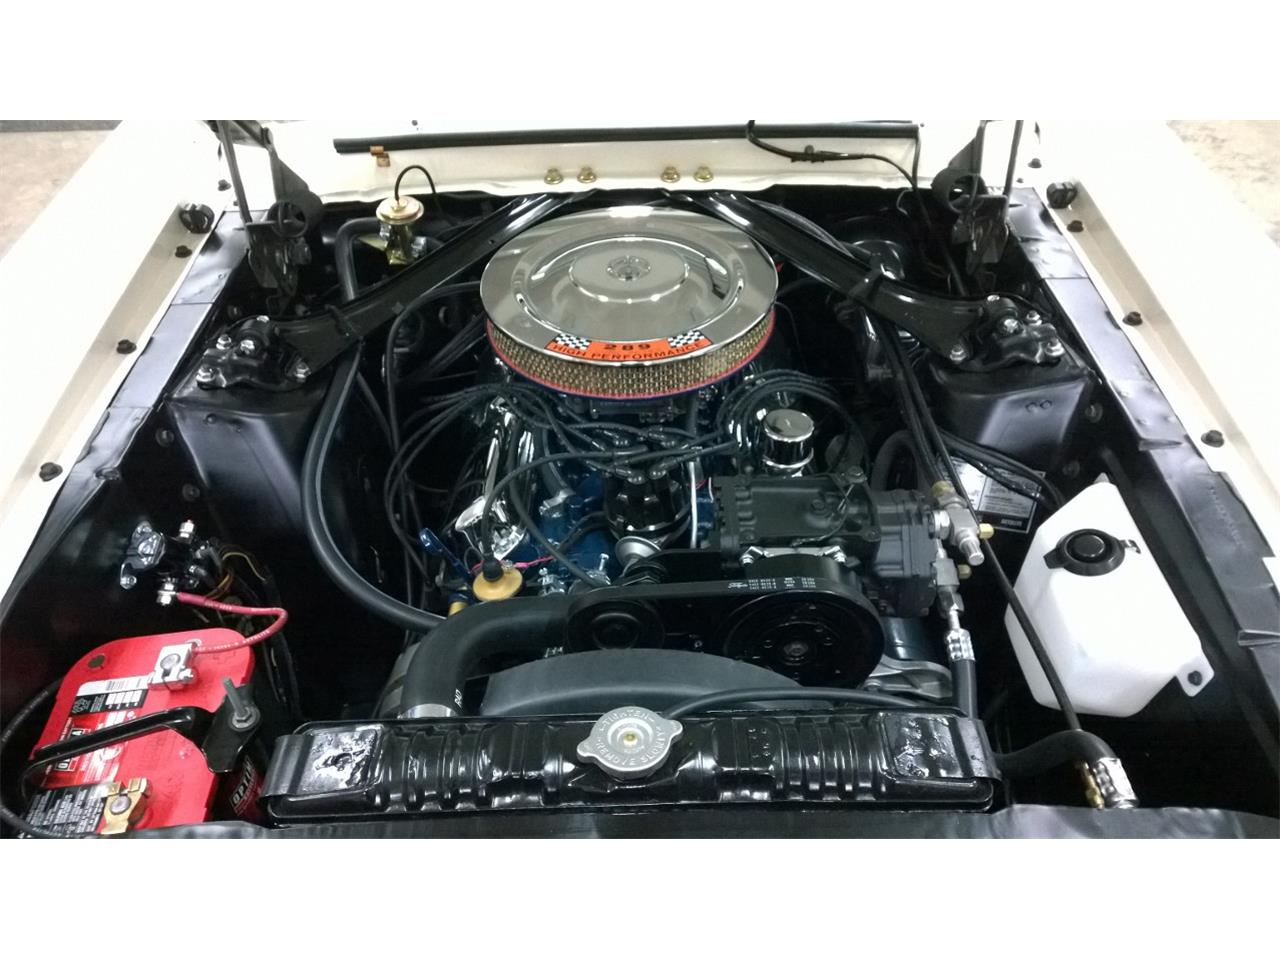 Large Picture of Classic 1967 Ford Mustang GT located in QLD - $120,000.00 Offered by a Private Seller - QADD